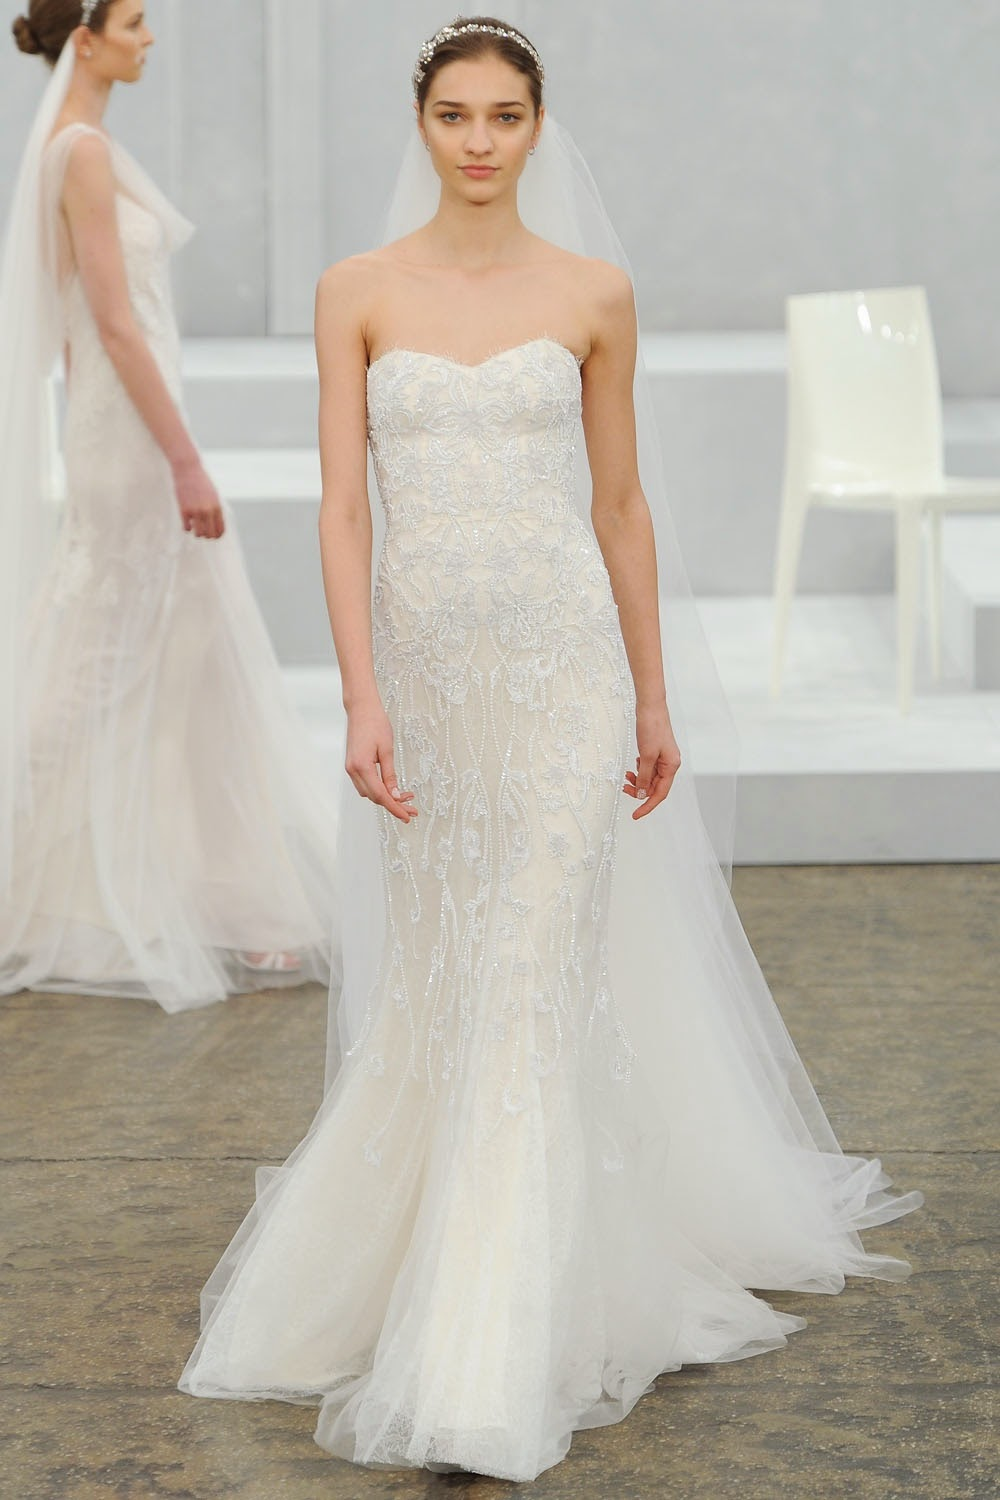 Monique lhuillier spring 2015 wedding dresses runway for Dresses for spring wedding